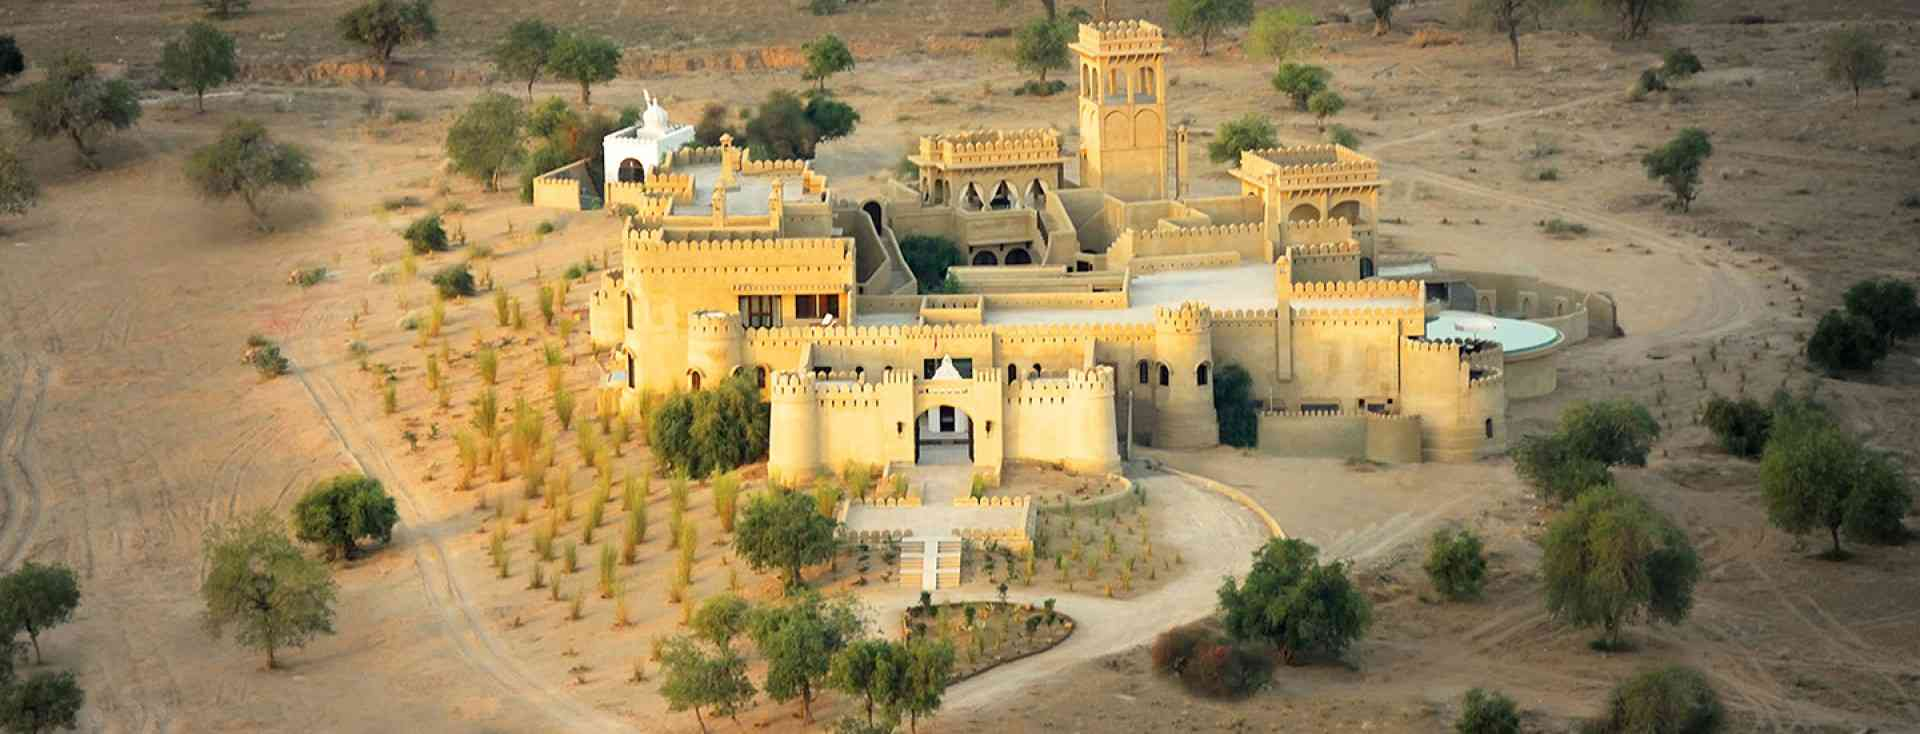 Mihir Garh Panoramic View